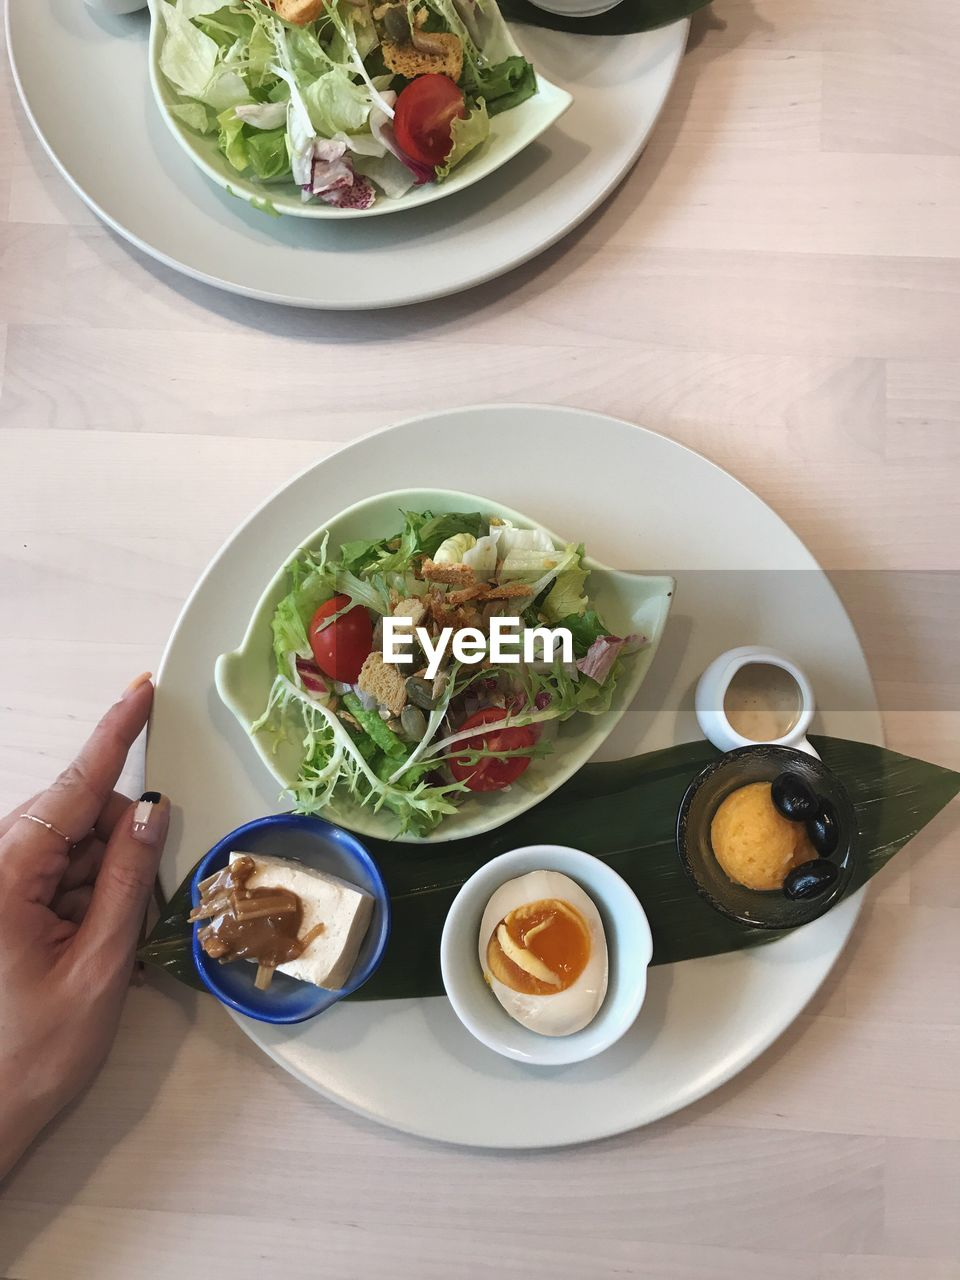 food and drink, food, table, human hand, hand, ready-to-eat, freshness, human body part, plate, one person, bowl, wellbeing, real people, healthy eating, indoors, high angle view, serving size, holding, unrecognizable person, meal, finger, crockery